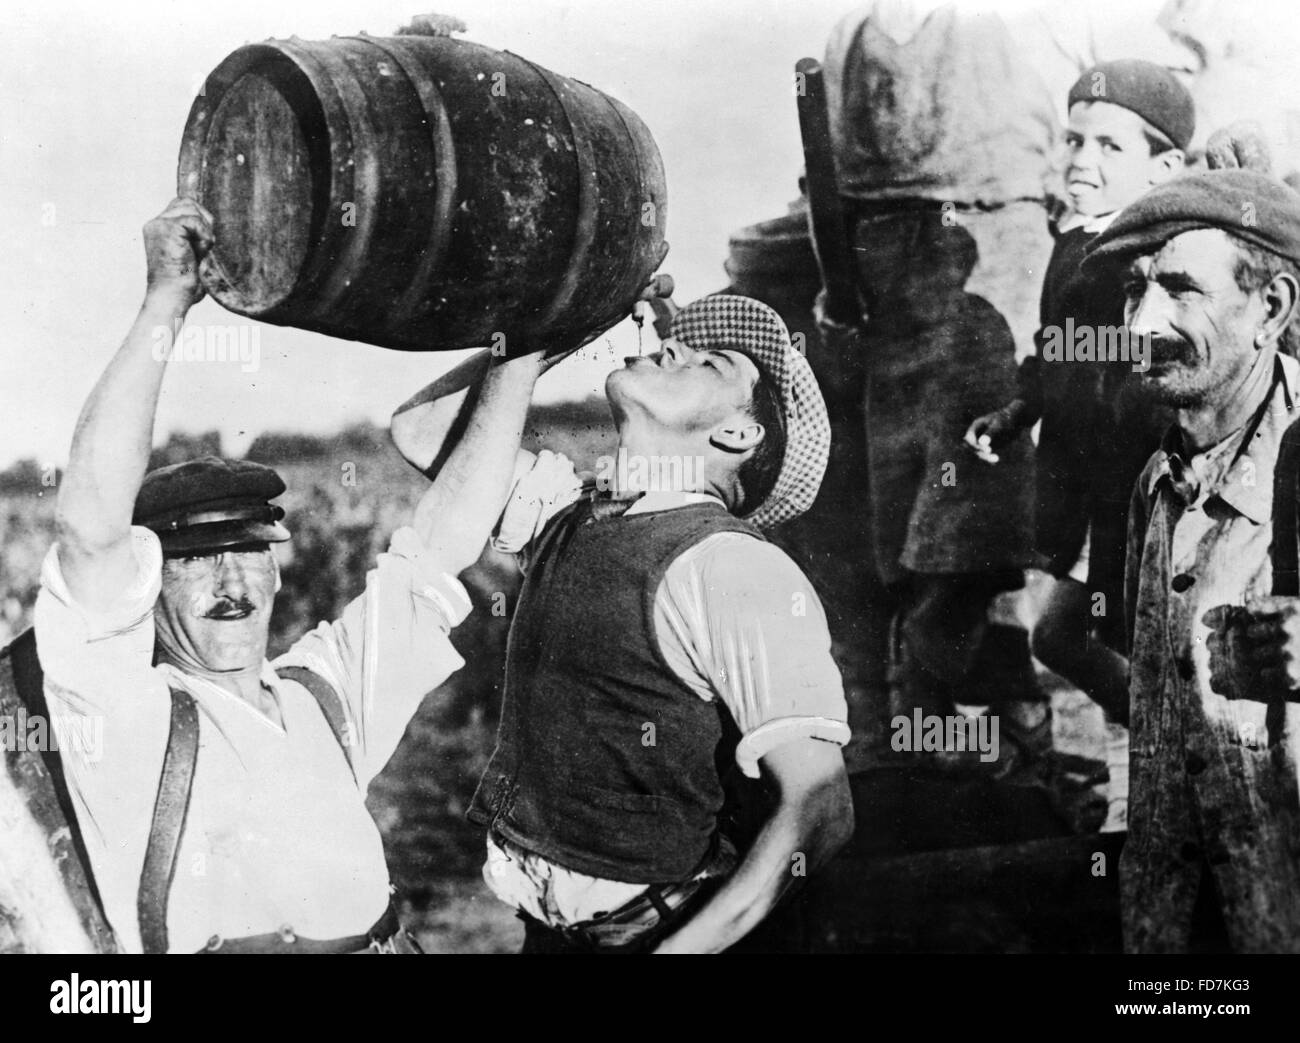 Man drinking wine during grape harvest in France, 1940 Stock Photo